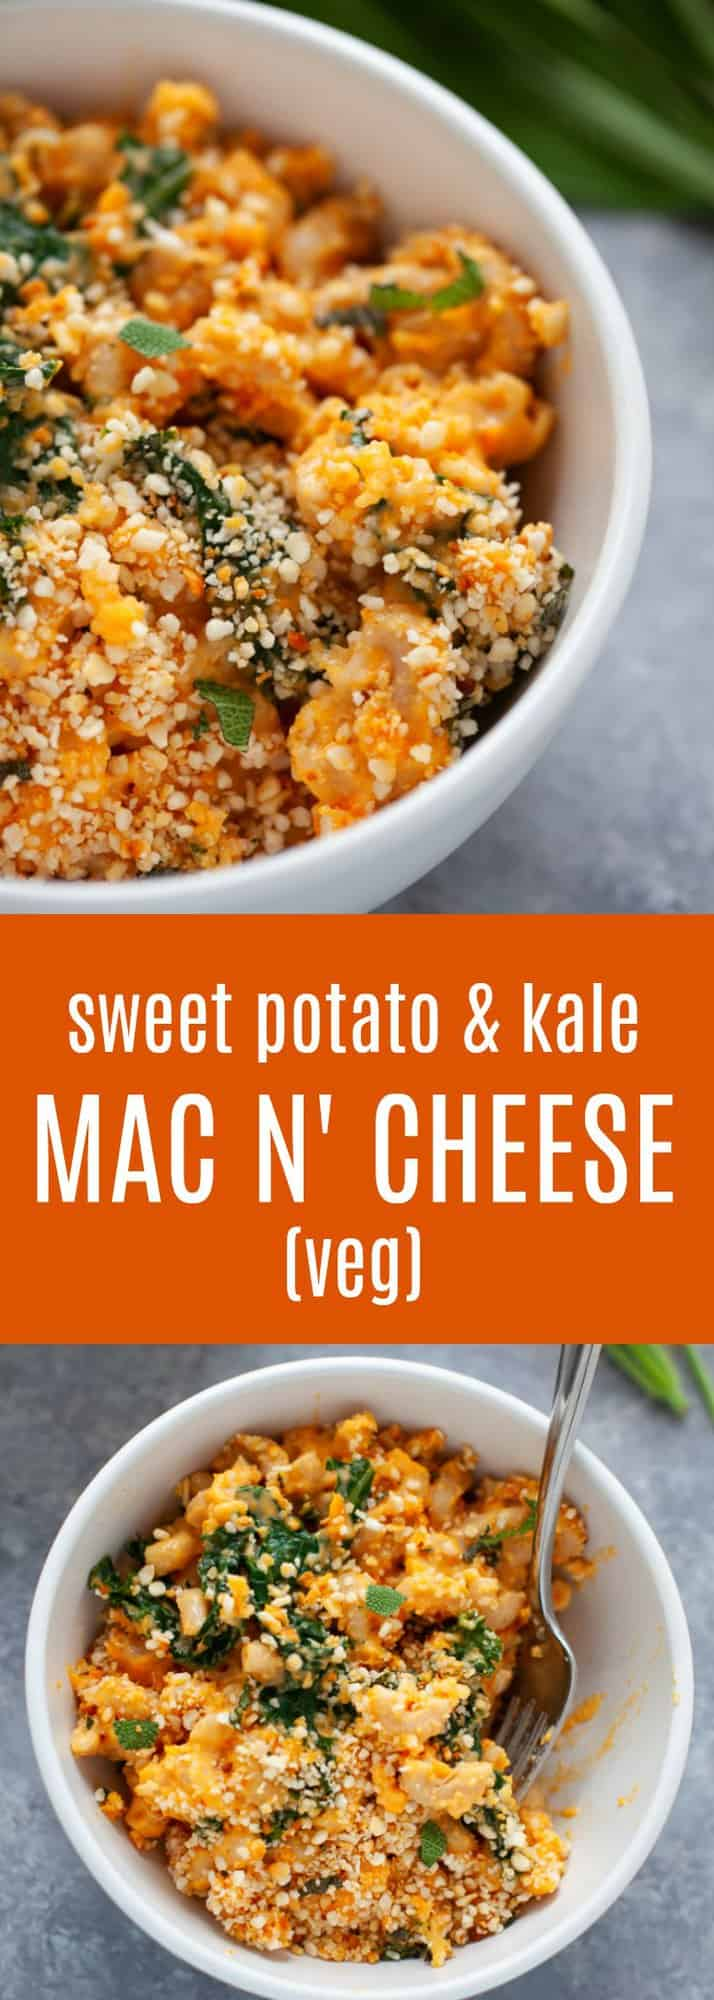 An inspired and elevated classic comfort food staple, this sweet potato mac and cheese with kale is packed with the sweet tasteof sweet potato and the earthy, savory flavor of sage. Plus, the added veggies help make this a more balanced pasta dish! #macandcheese #sweetpotato #fall #vegetarian #healthy